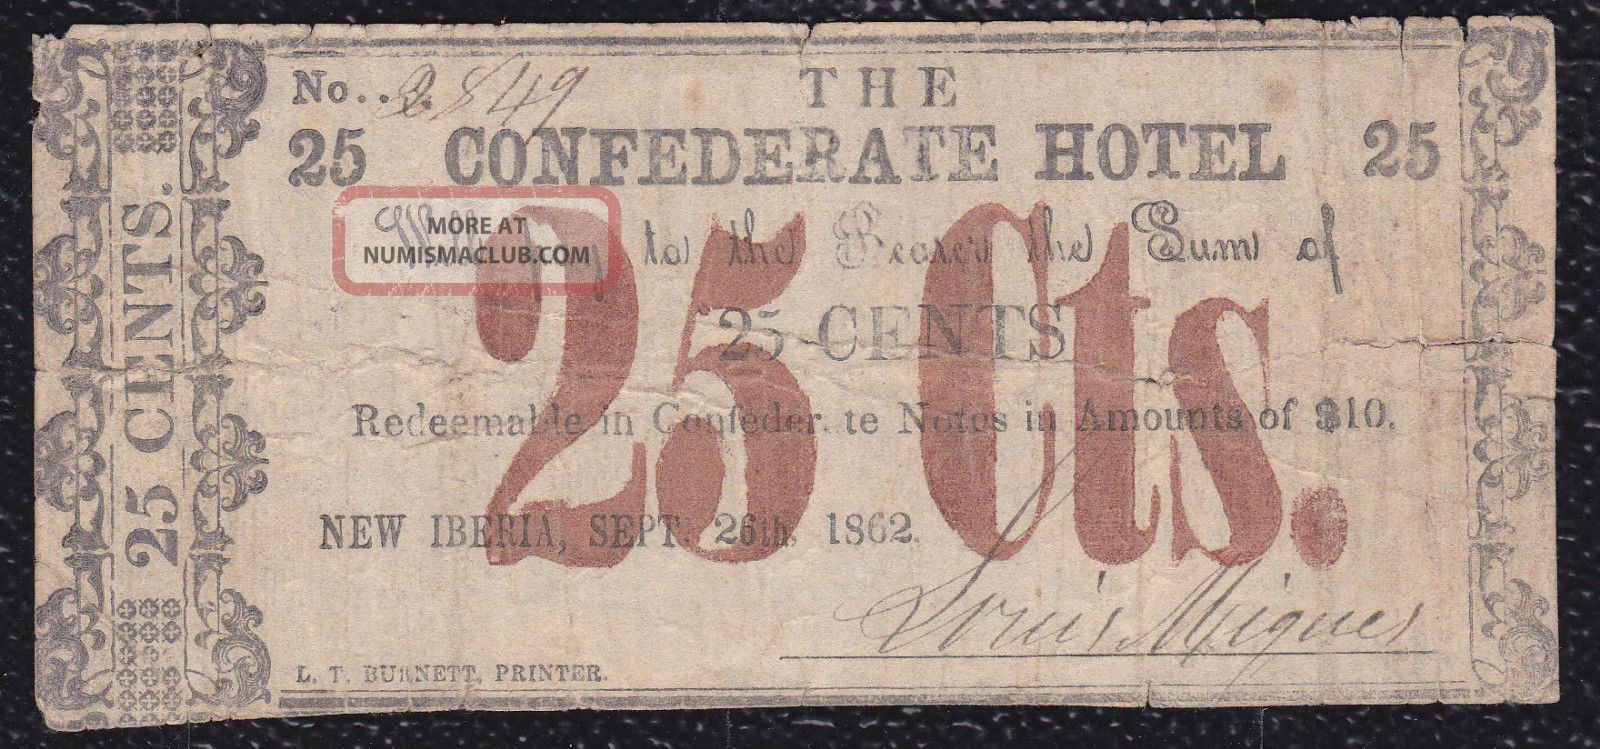 25 Cents The Confederate Hotel,  Iberia,  September 1862 Paper Money: US photo